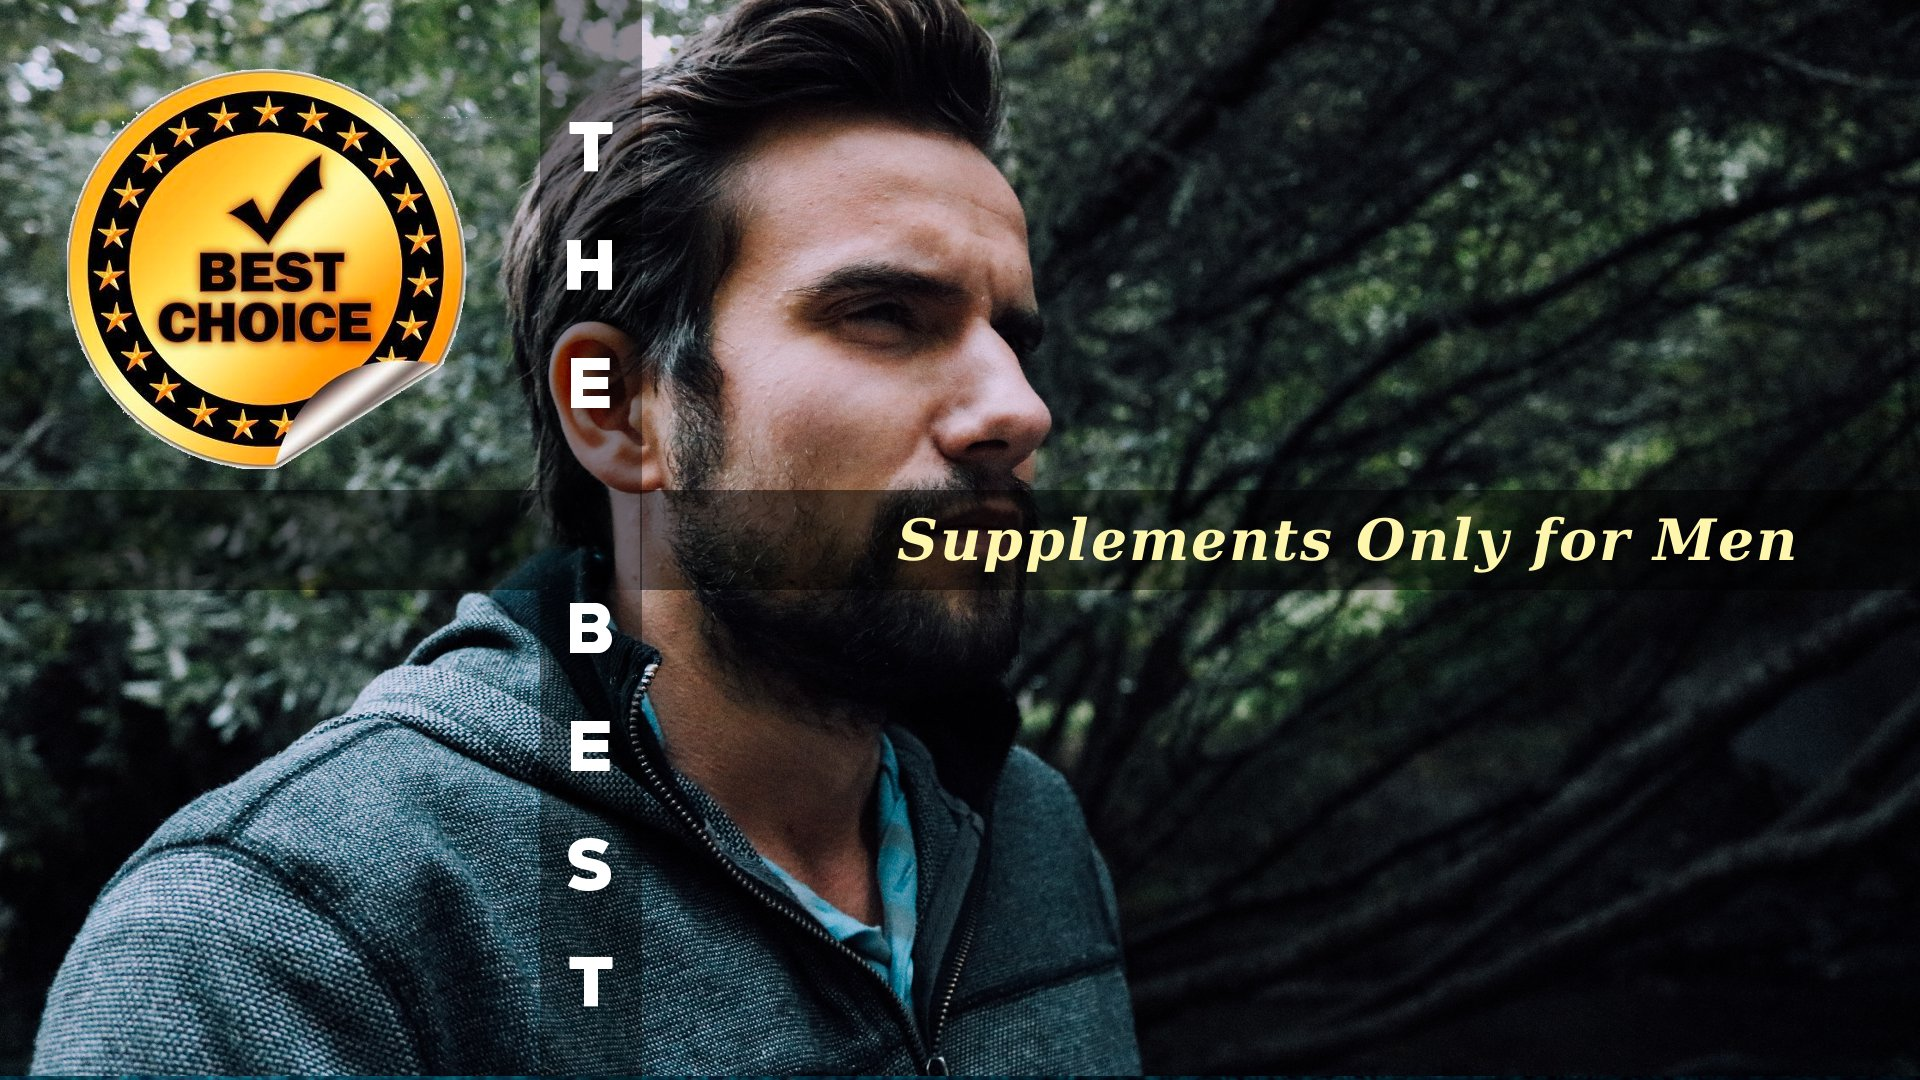 The Supplements Only for Men